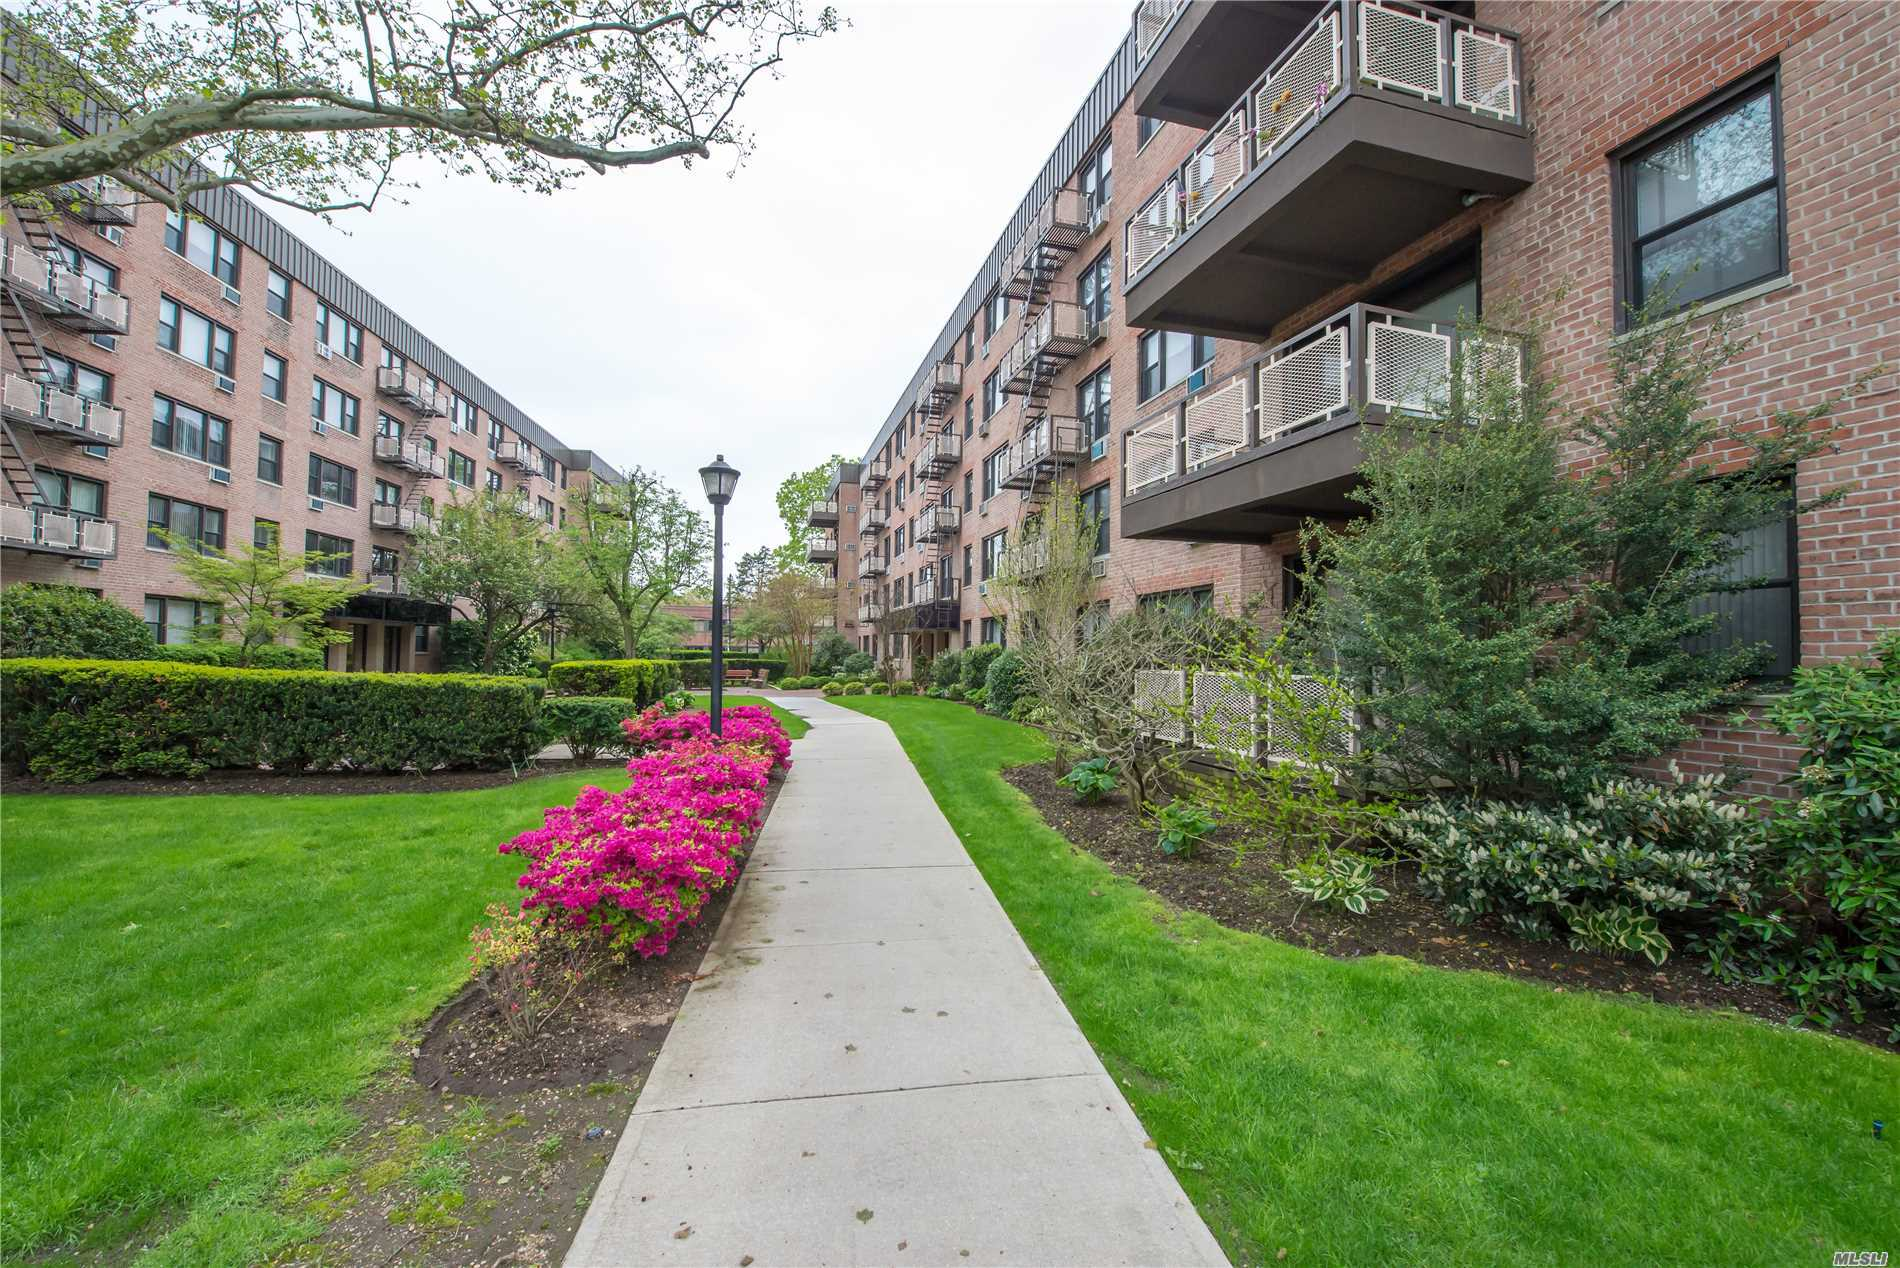 Gorgeous, Updated, 2 Bedroom, 2 Bath Unit In Prestigious Birchwood Court!! This is The Largest Unit-Sutton Model Which Includes A Large Walkout Balcony. This Building Is One Of The Most Desirable In The Development With Easy Access To Old Country Road And Roslyn Road. Amenities Offered Include Laundry Facilities, Storage, Convenience to Railroad, Parkways And Garden City Mall. **This Unit Comes With A Parking Spot**